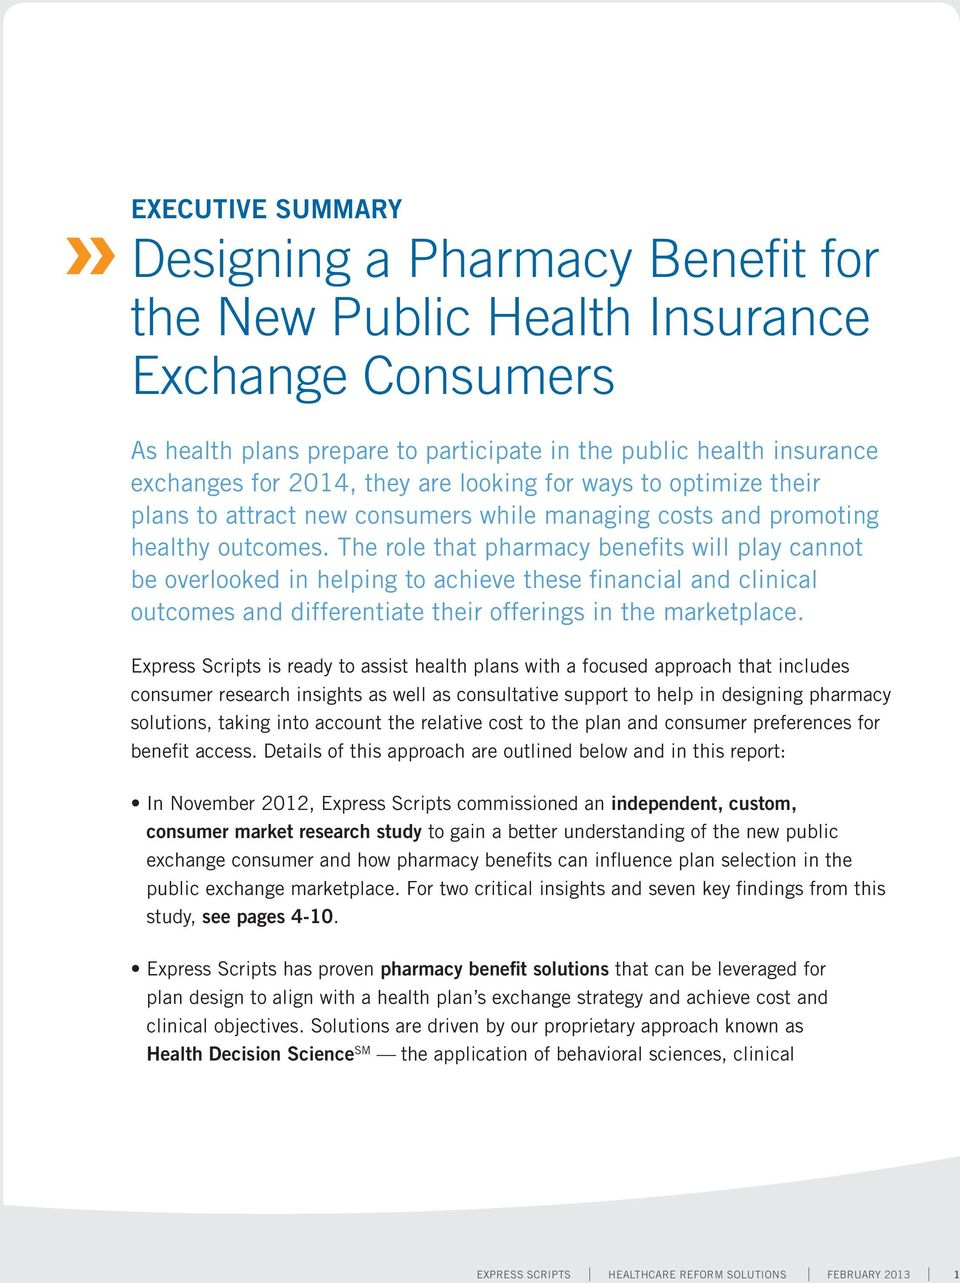 The role that pharmacy benefits will play cannot be overlooked in helping to achieve these financial and clinical outcomes and differentiate their offerings in the marketplace.